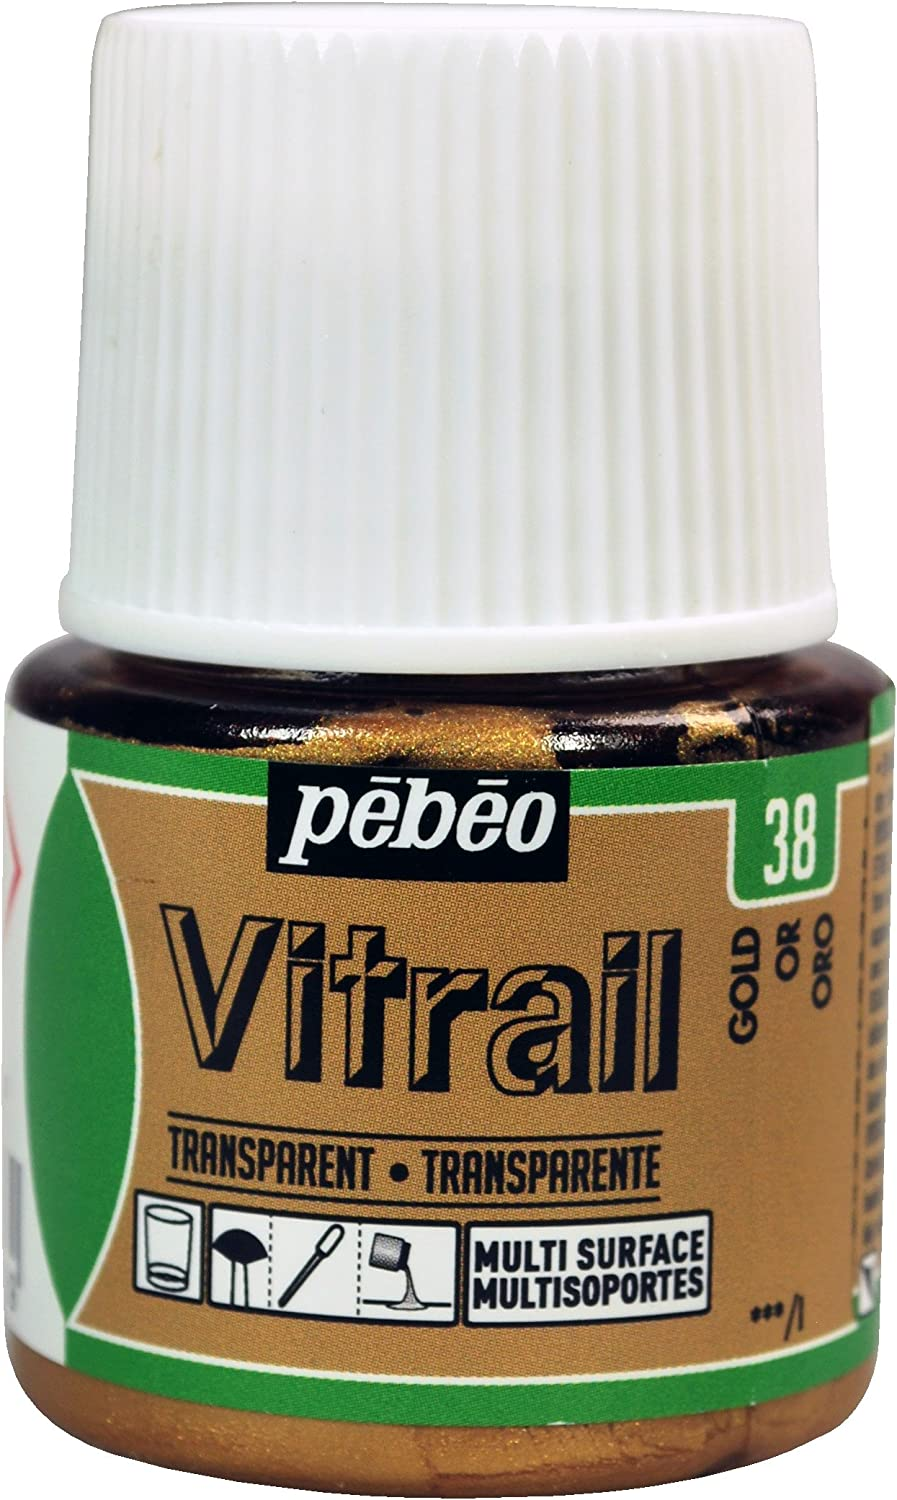 Pebeo Vitrail, Stained Glass Effect Paint, 45 ml Bottle - Gold